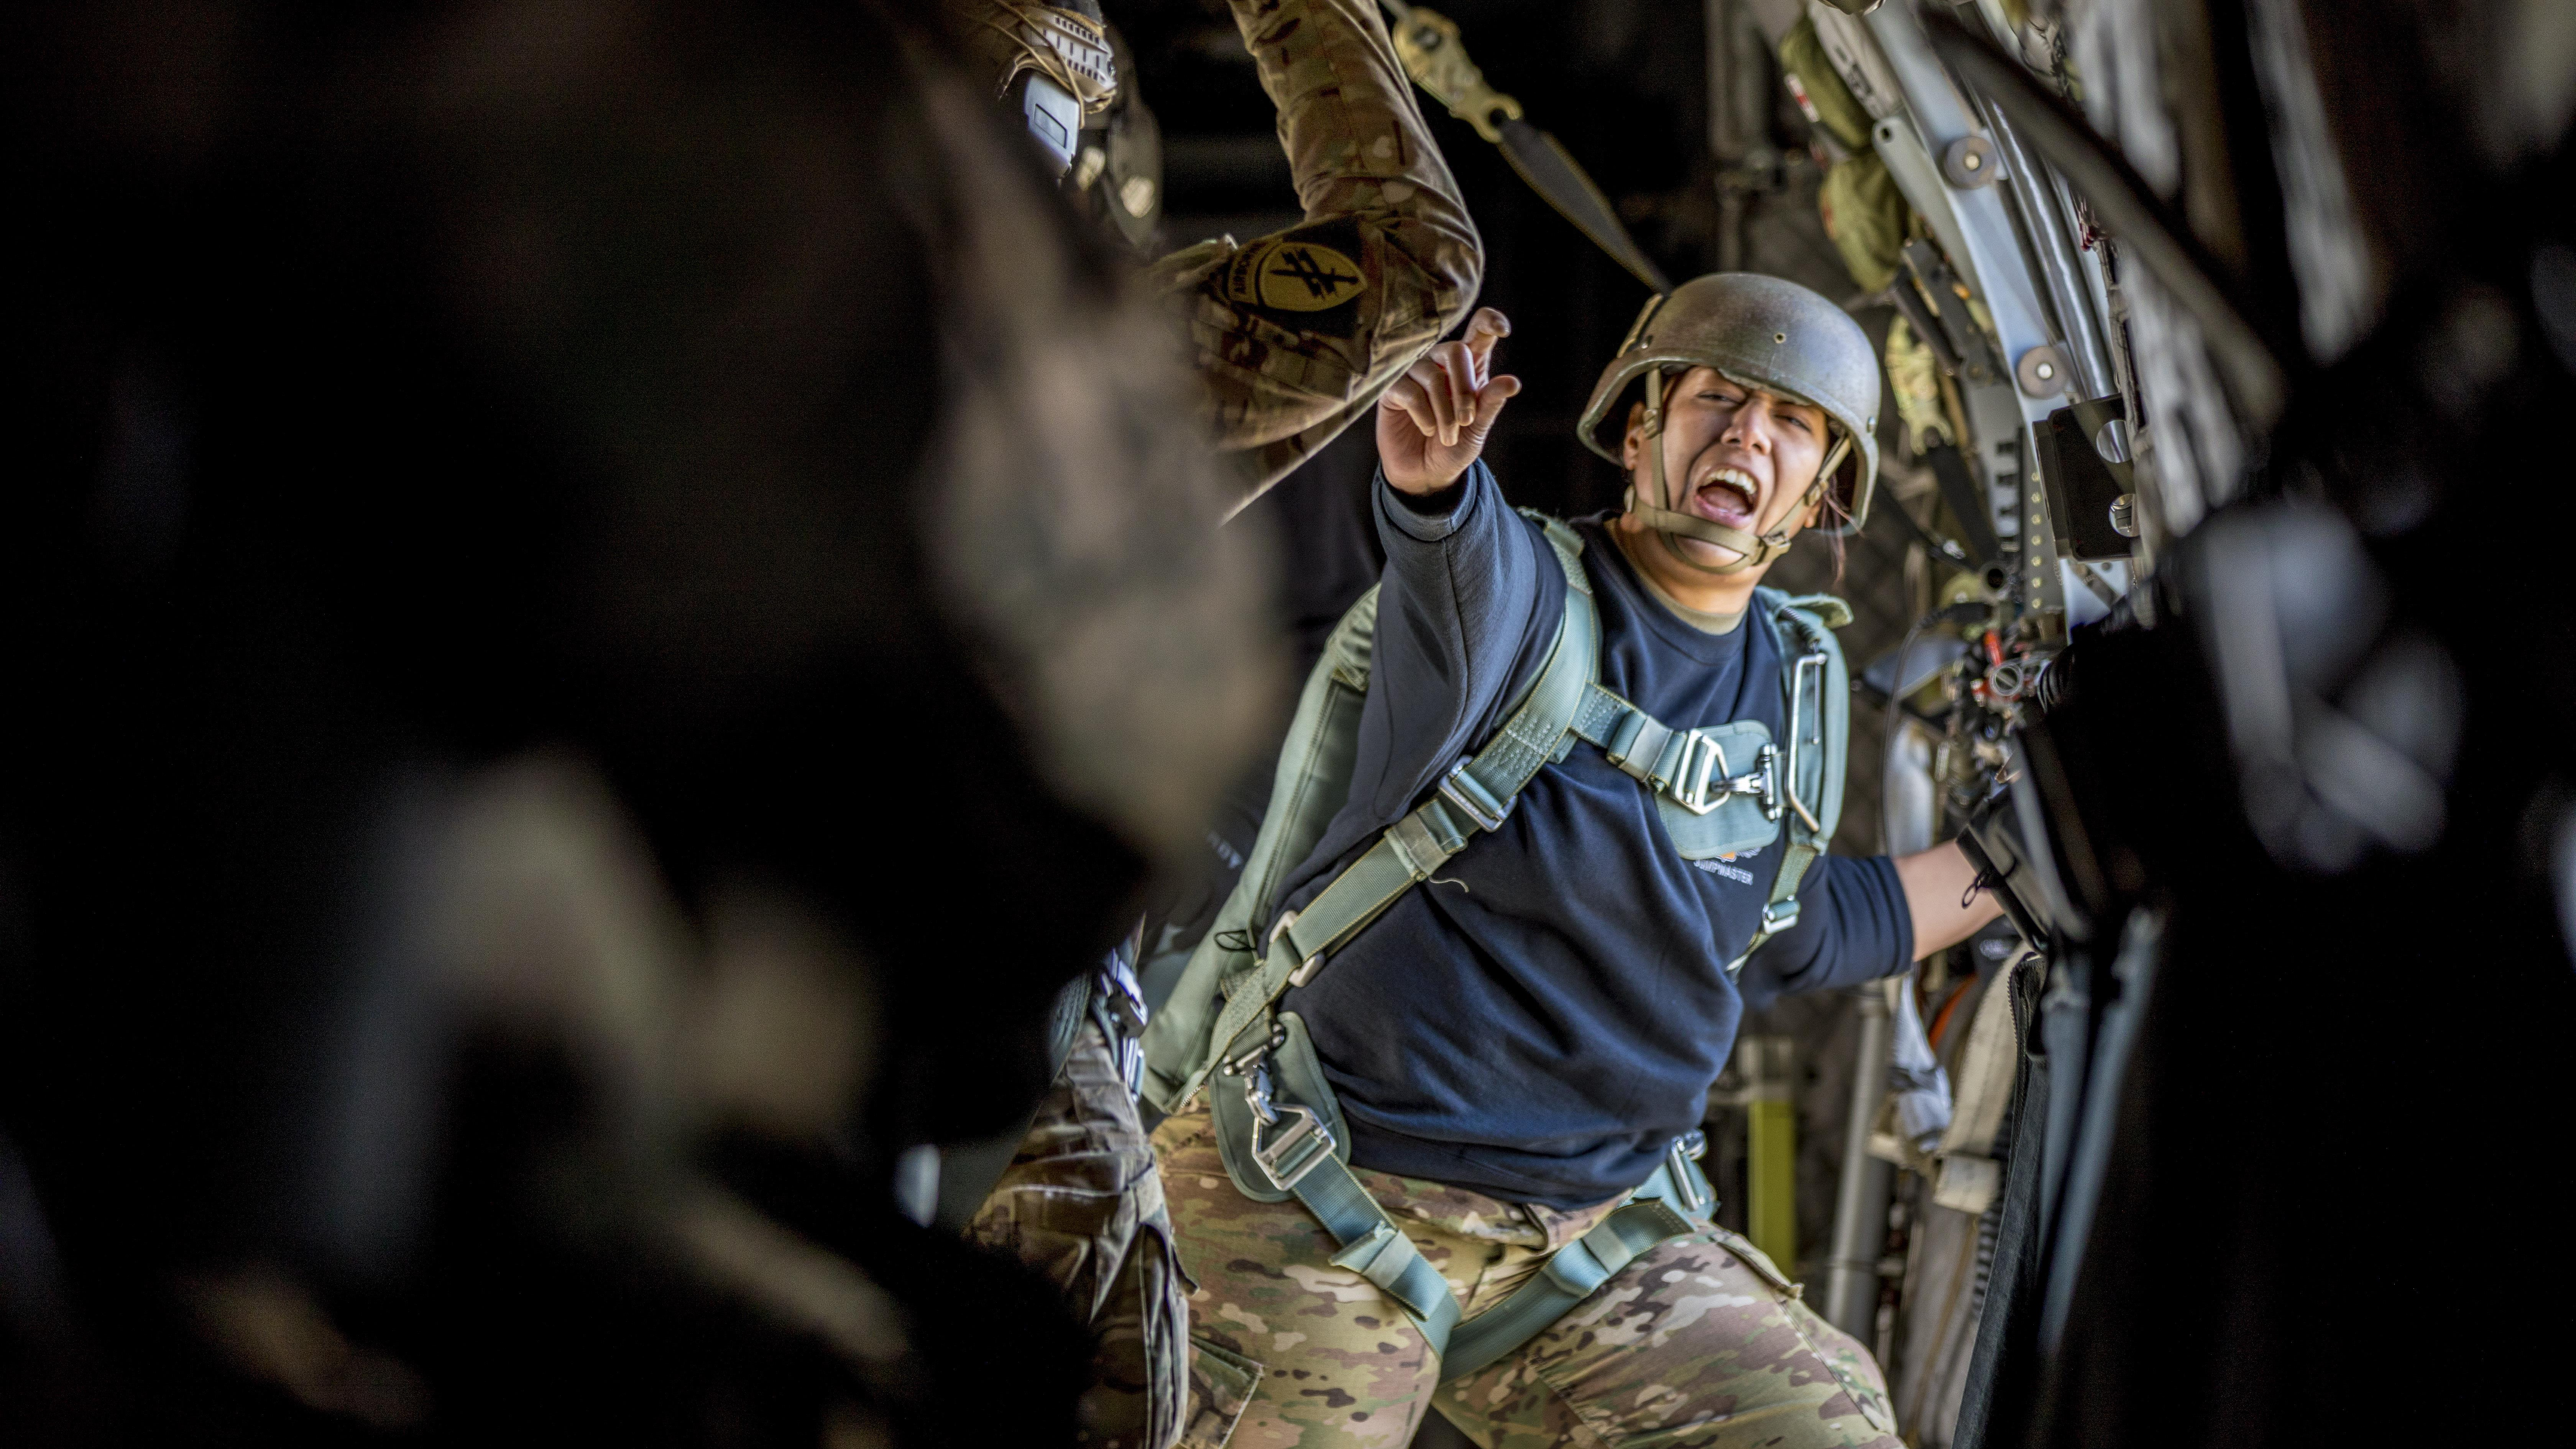 Army Staff Sgt. Nikita Revilloza, a jumpmaster, relays commands during the 20th Annual Randy Oler Memorial Operation Toy Drop at Camp MacKall, N.C. The event allows soldiers to maintain their airborne readiness and give back to the community. (Spc. Darius Davis/Army)